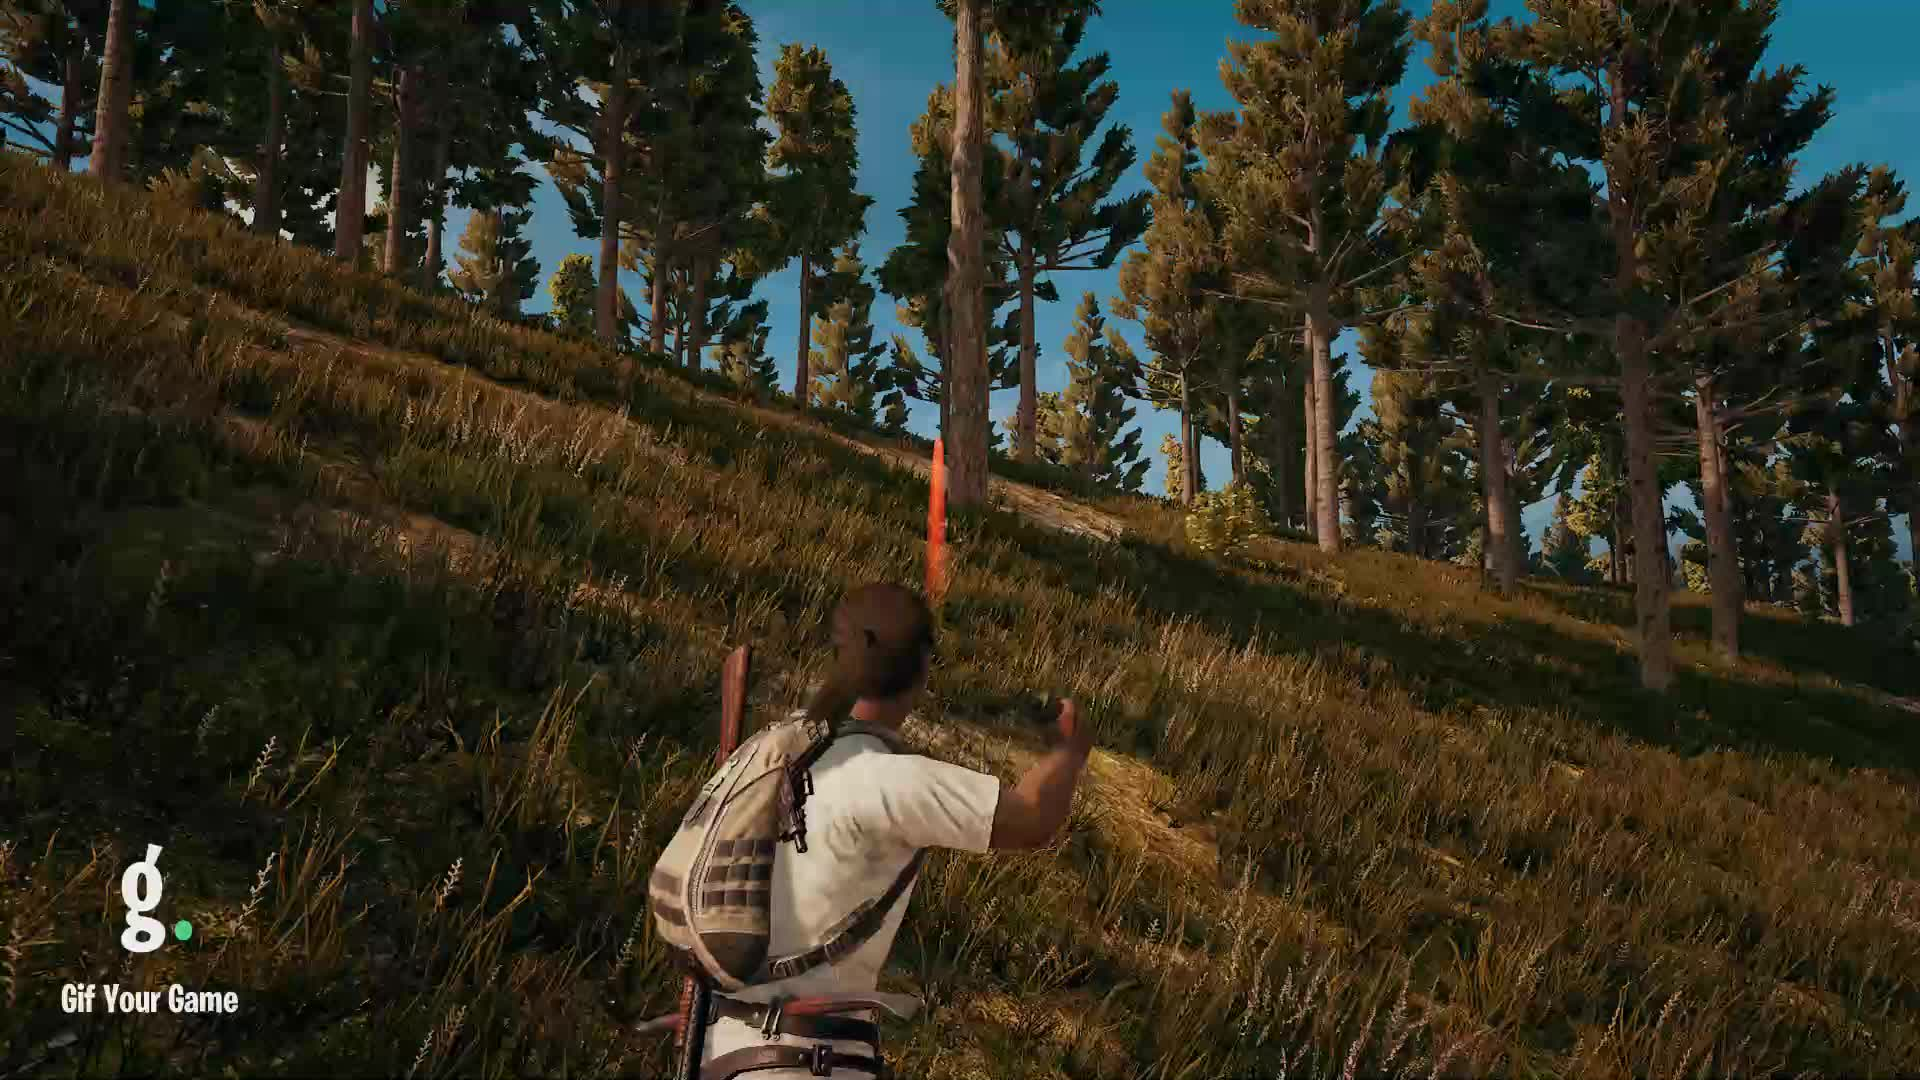 Gif Your Game, GifYourGame, PUBATTLEGROUNDS, pubg, gifyourgame user clip 3 GIFs